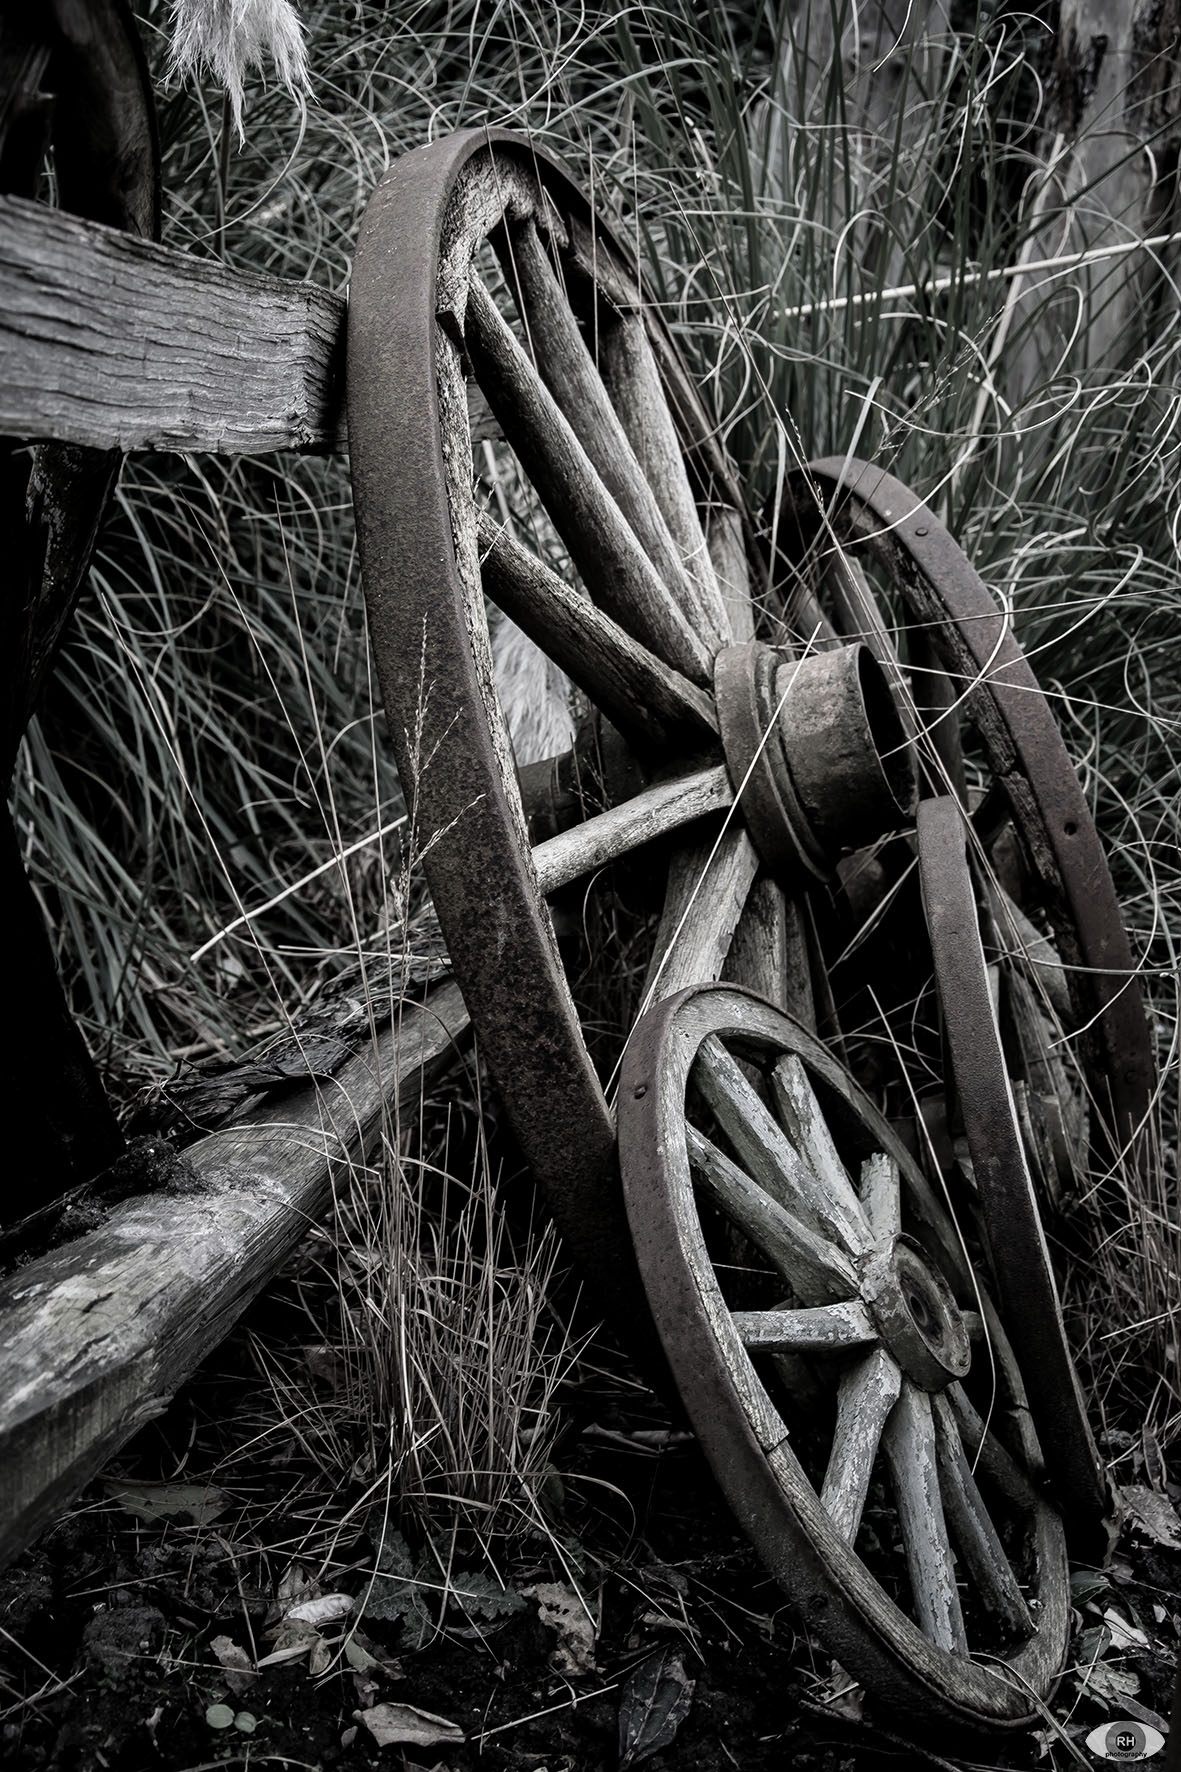 Wheels lost... by ⭐ rhphotography